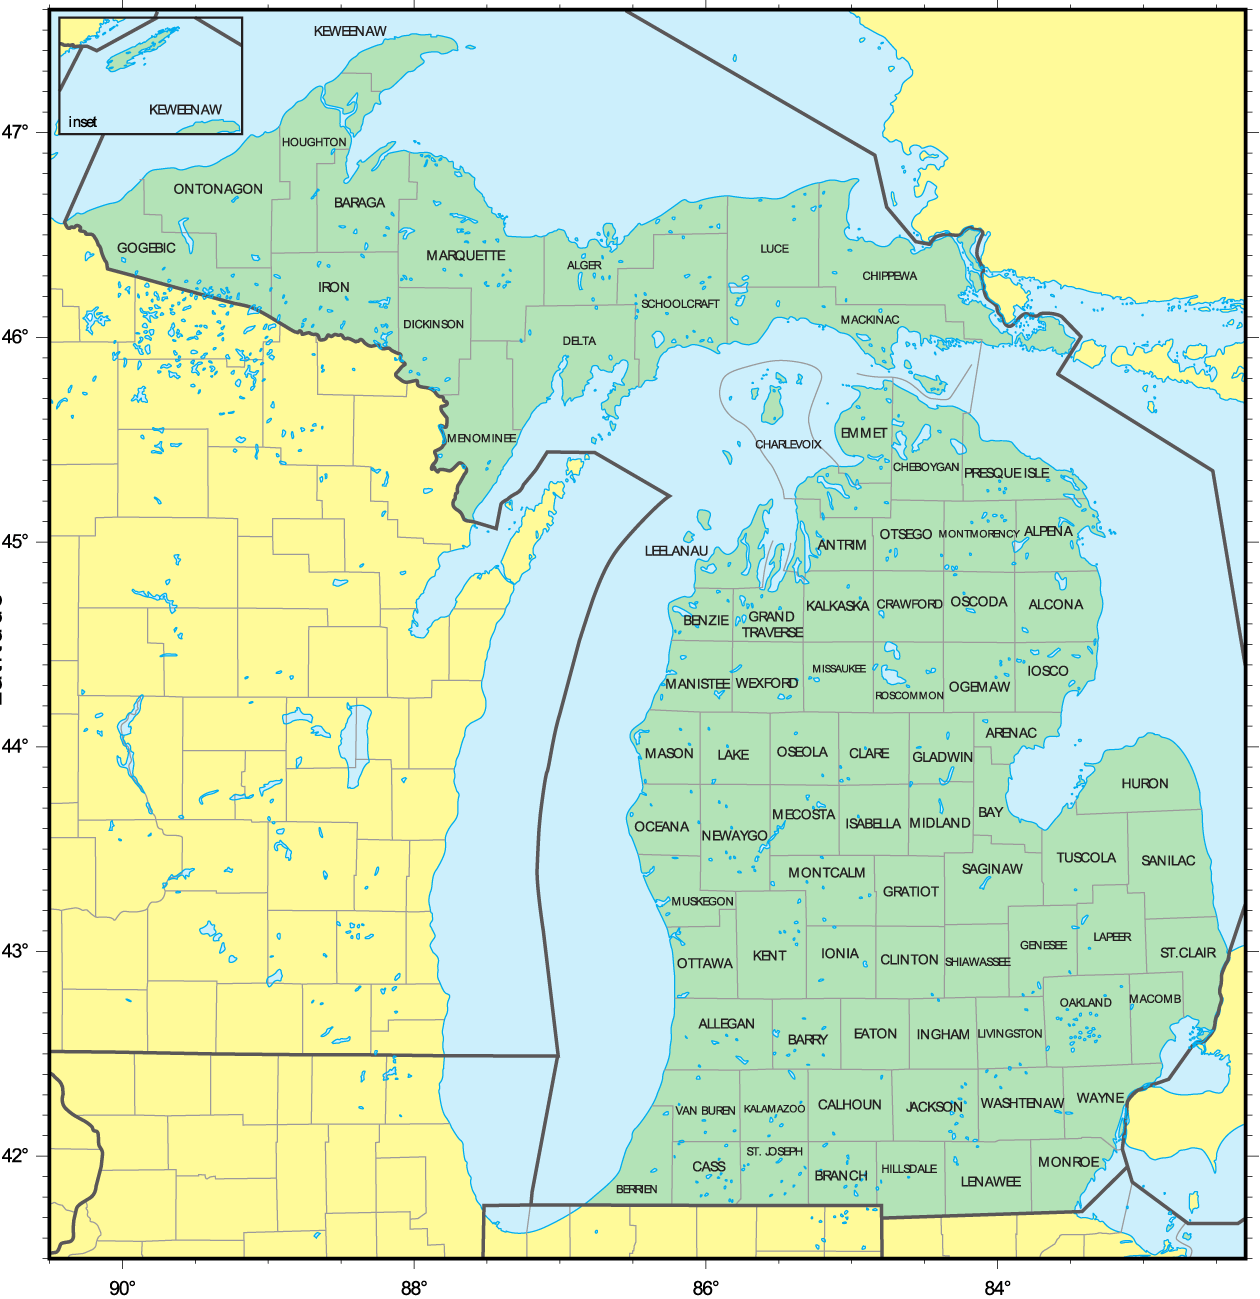 Counties Map Of Michigan Mapsofnet - Michigan county map